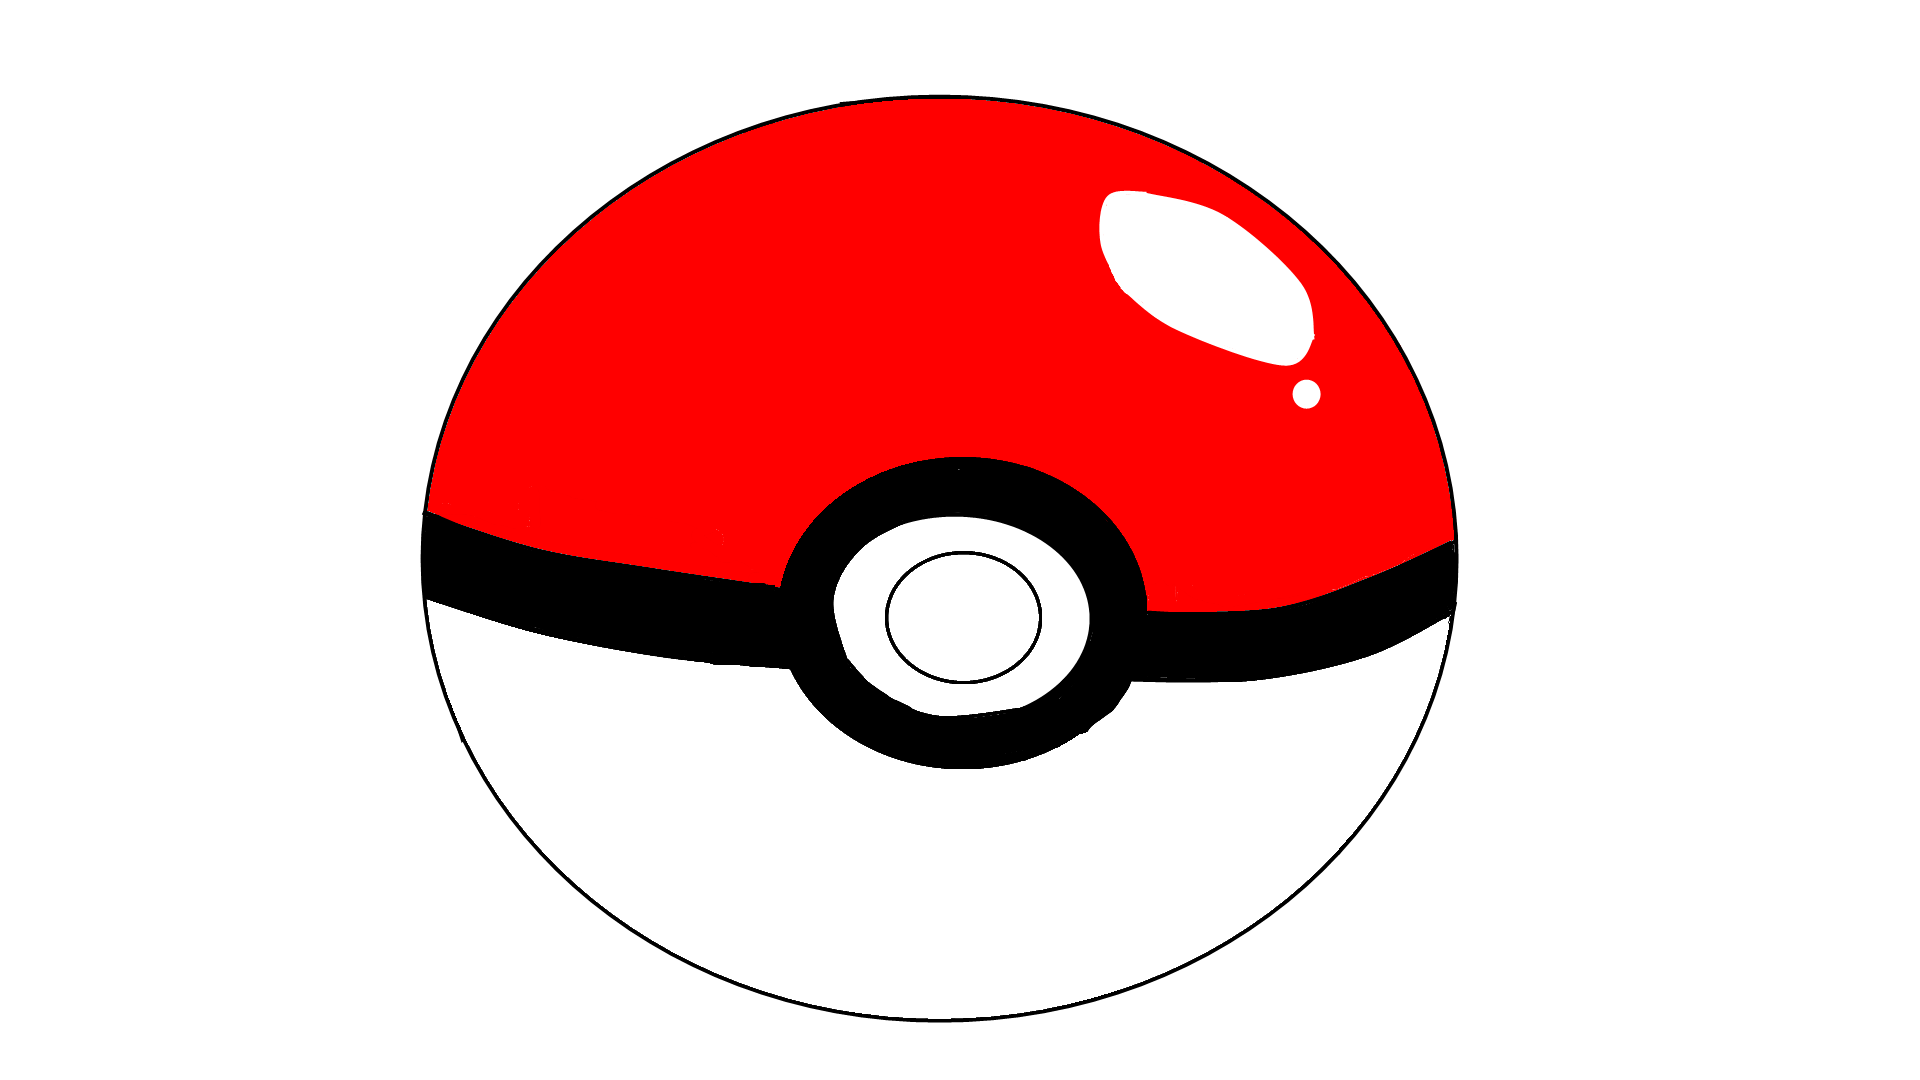 Image png s a. Pokeball clipart cool